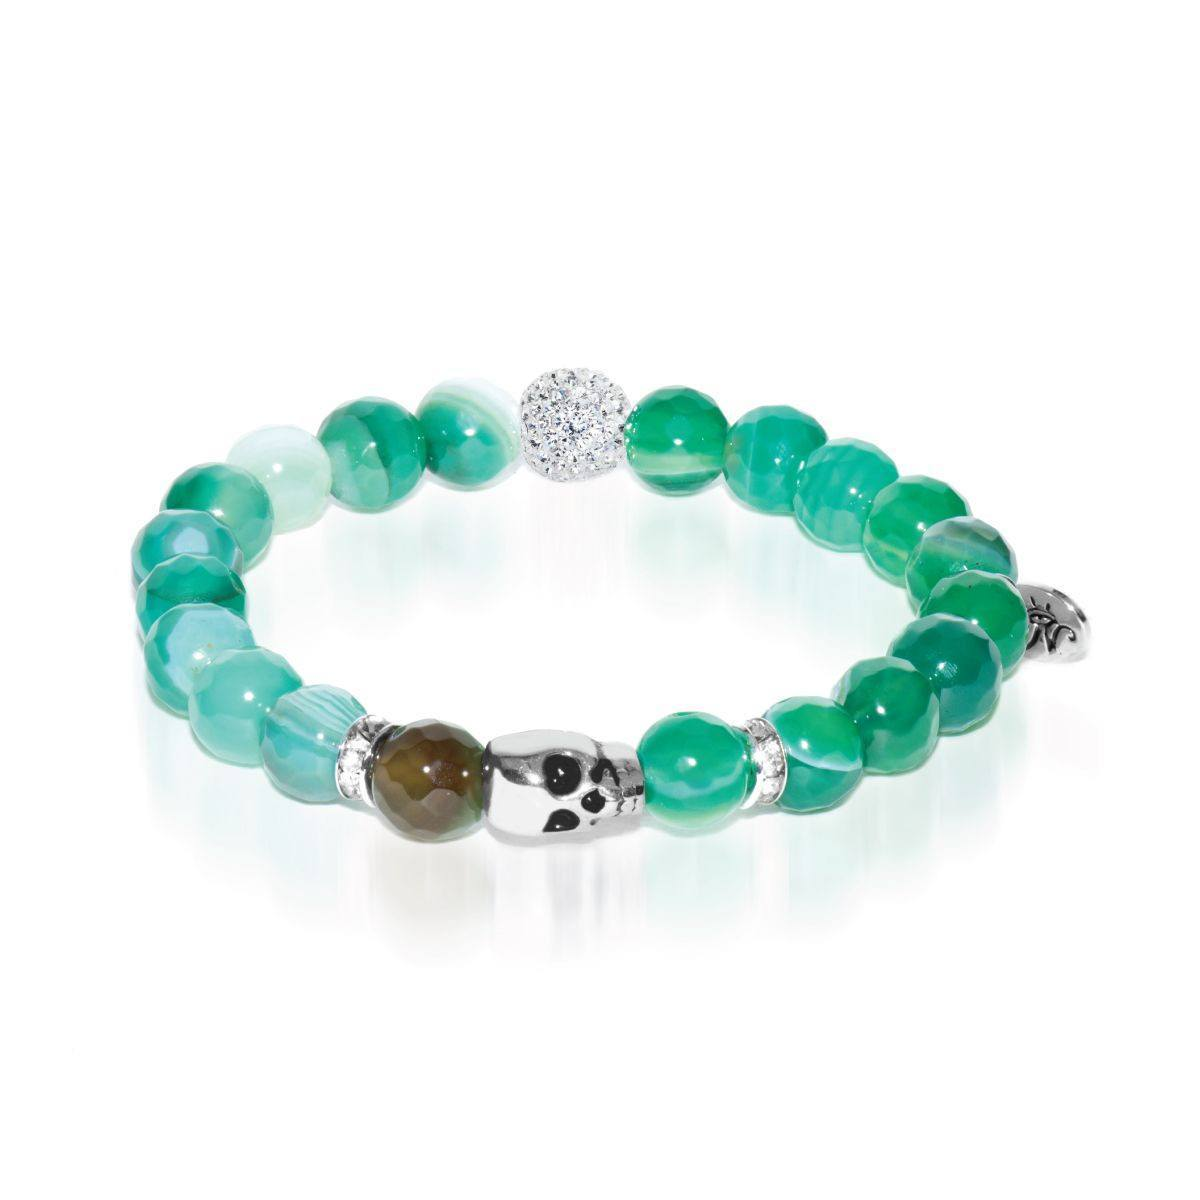 Book of Shadows | White Gold Crystal Skull Charm Green Striped Faceted Agate Bracelet